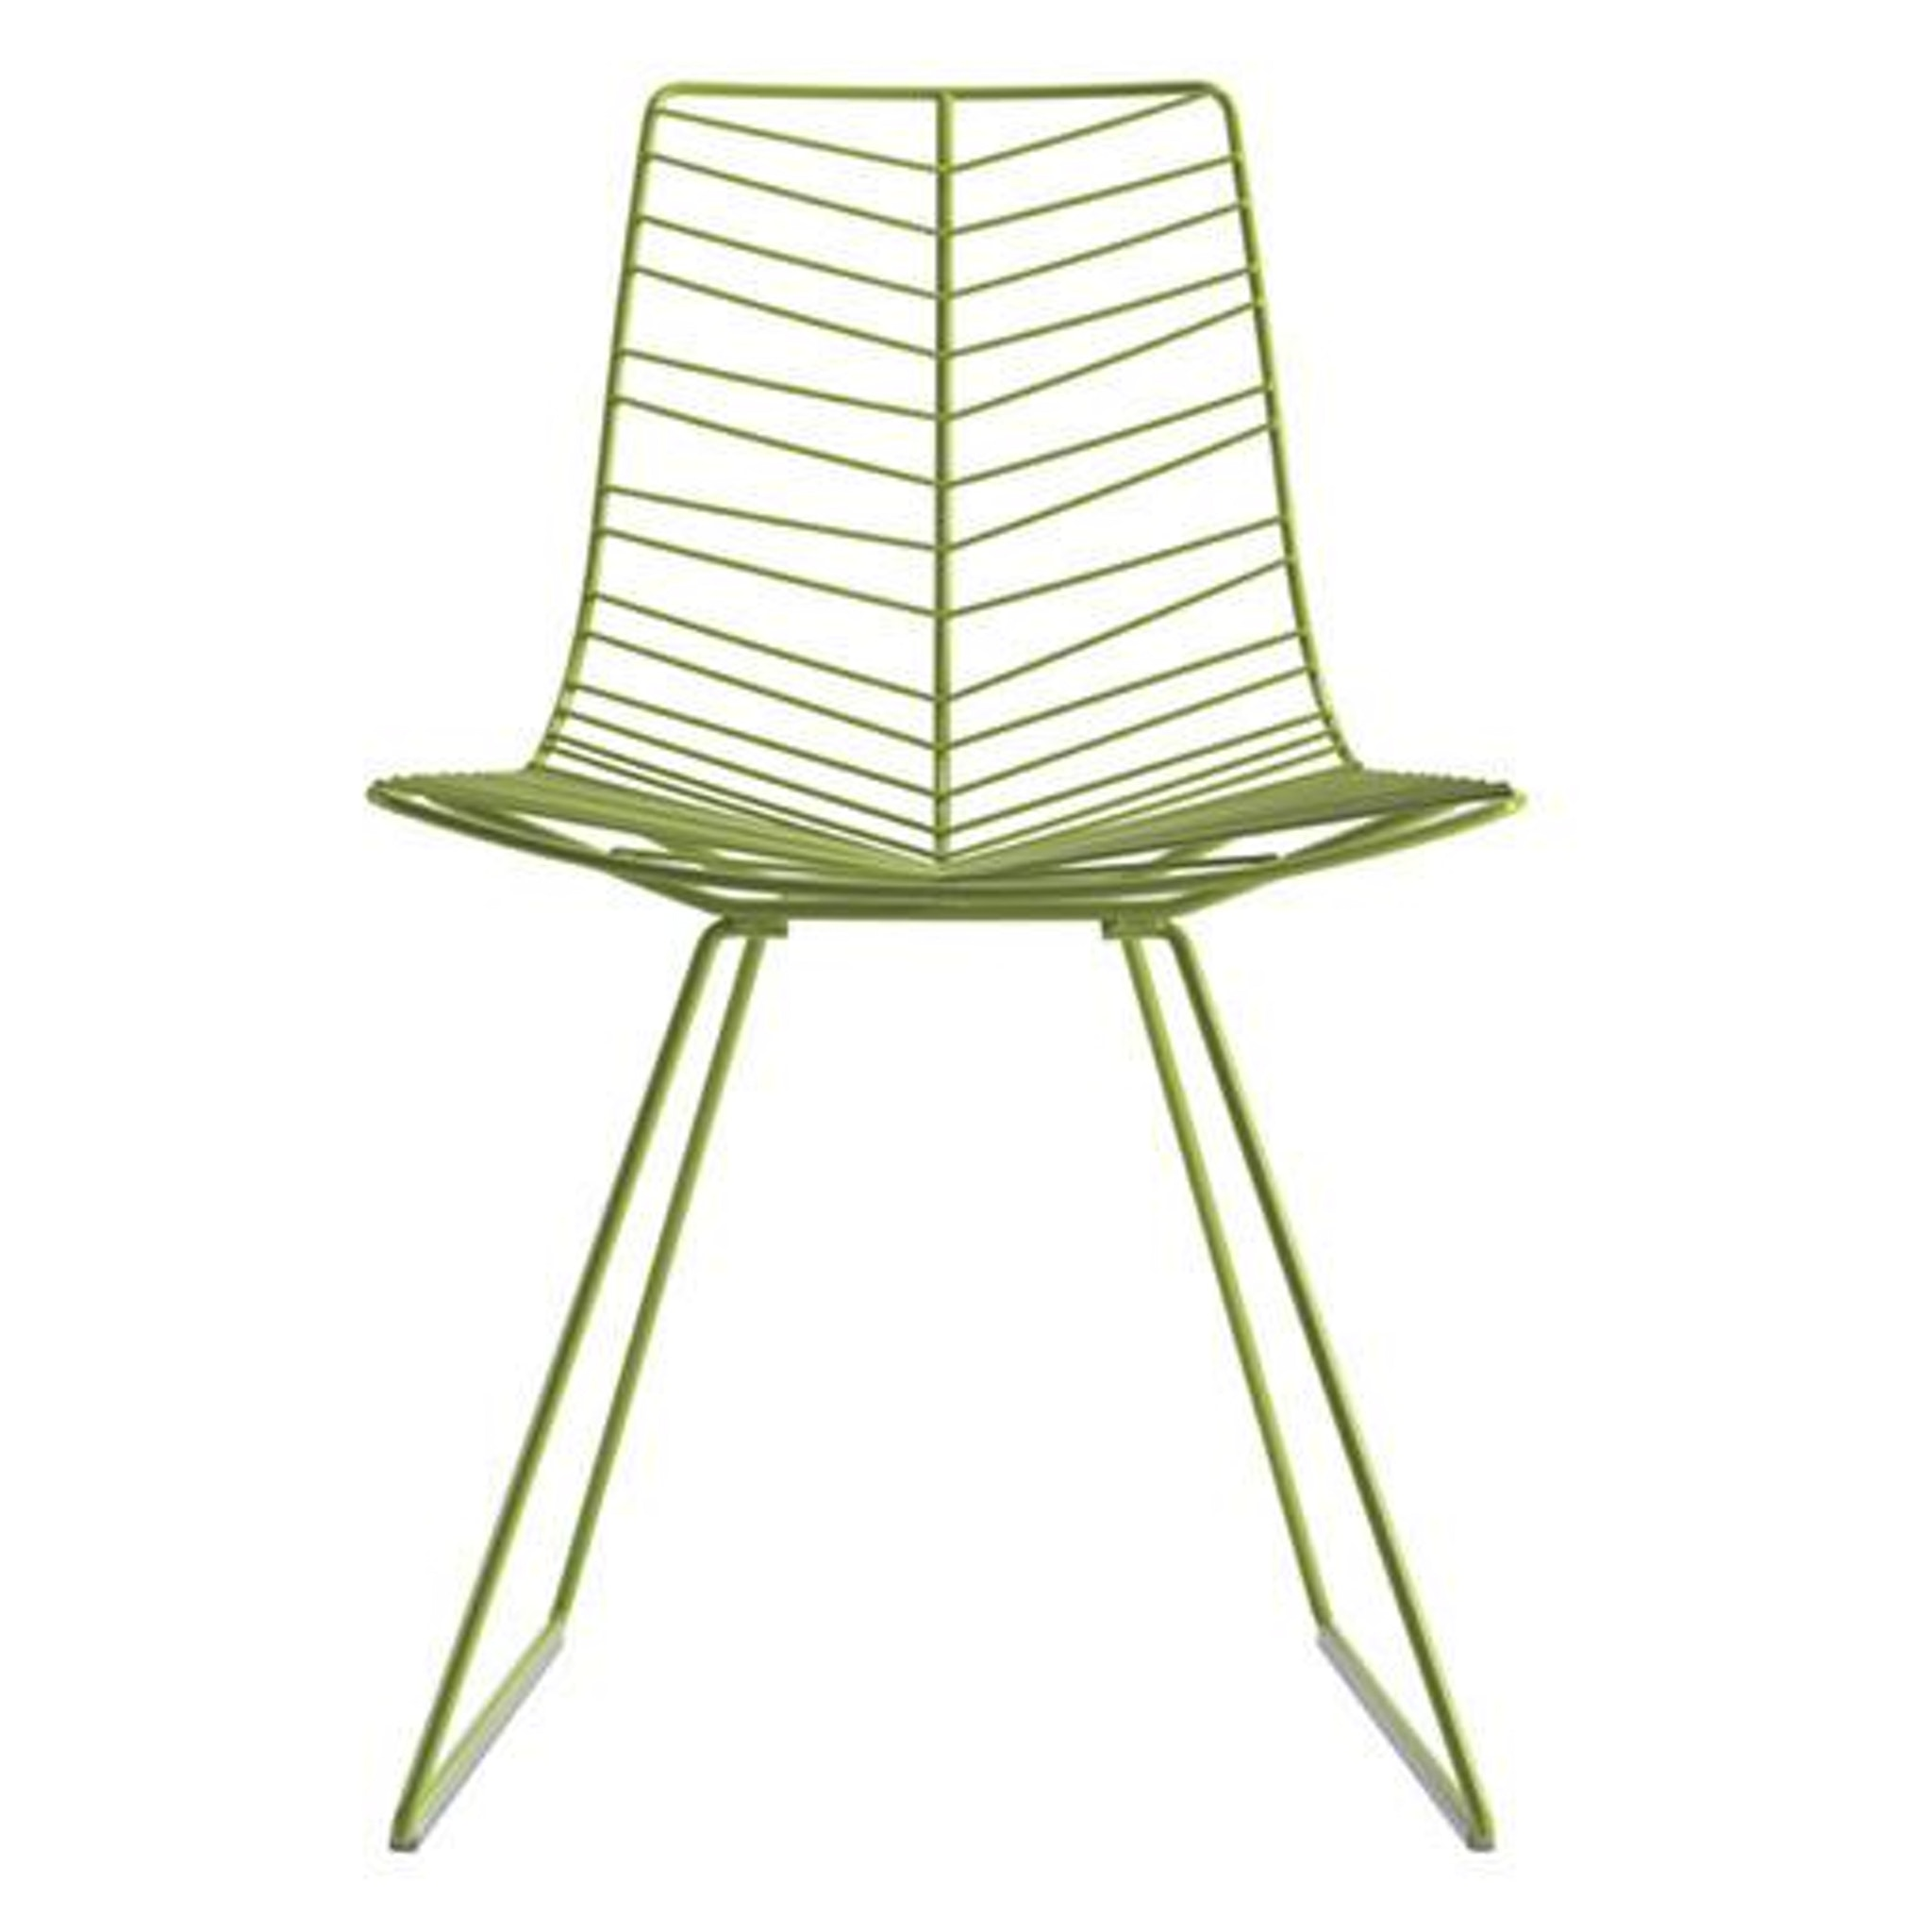 Leaf Chair by Lievore Altherr Molina, Arper